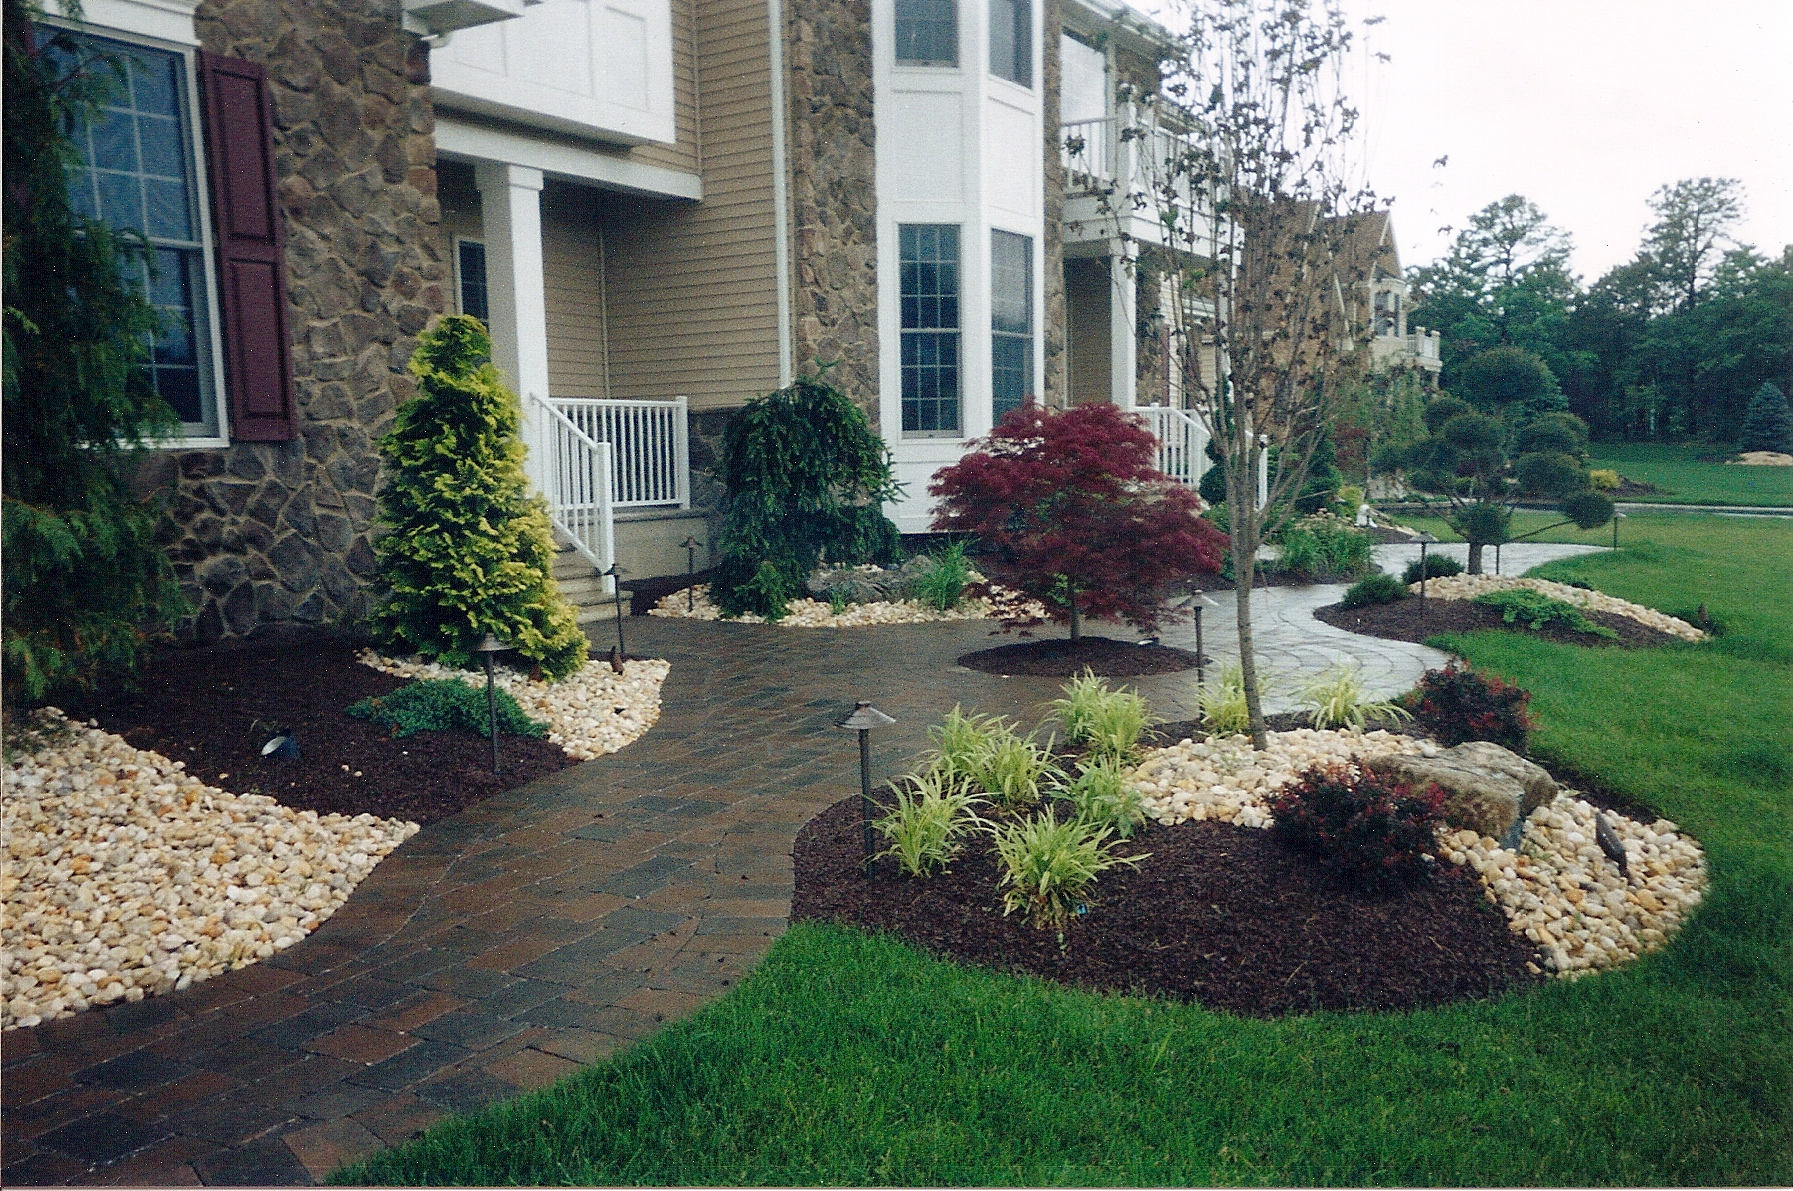 Walkway and landscaping landscaper nj lawn care nj for Designer landscapes